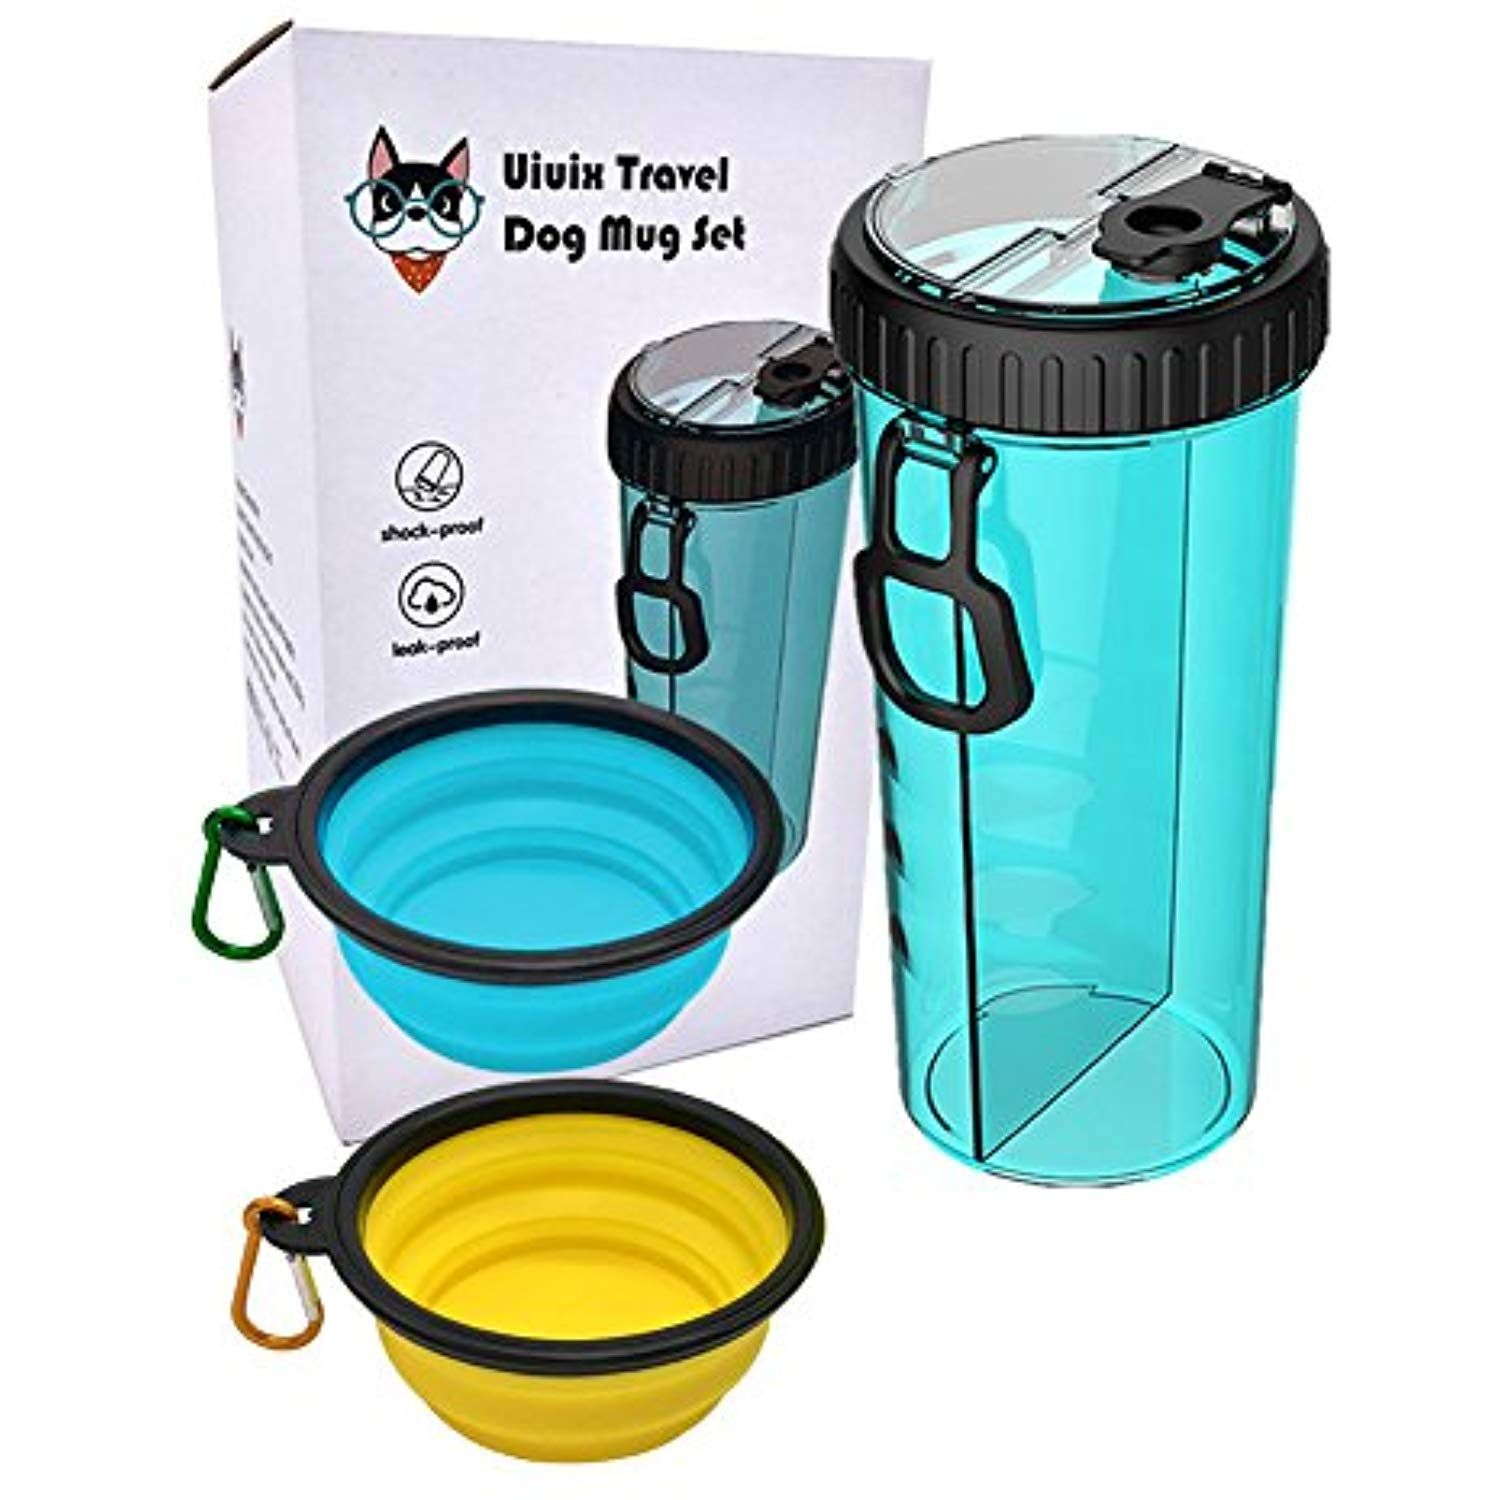 Uiuix Dog Water Bottle With Bowl 2 In 1 Travel Portable Dog Food Container And Water Bottle For Walki Dog Water